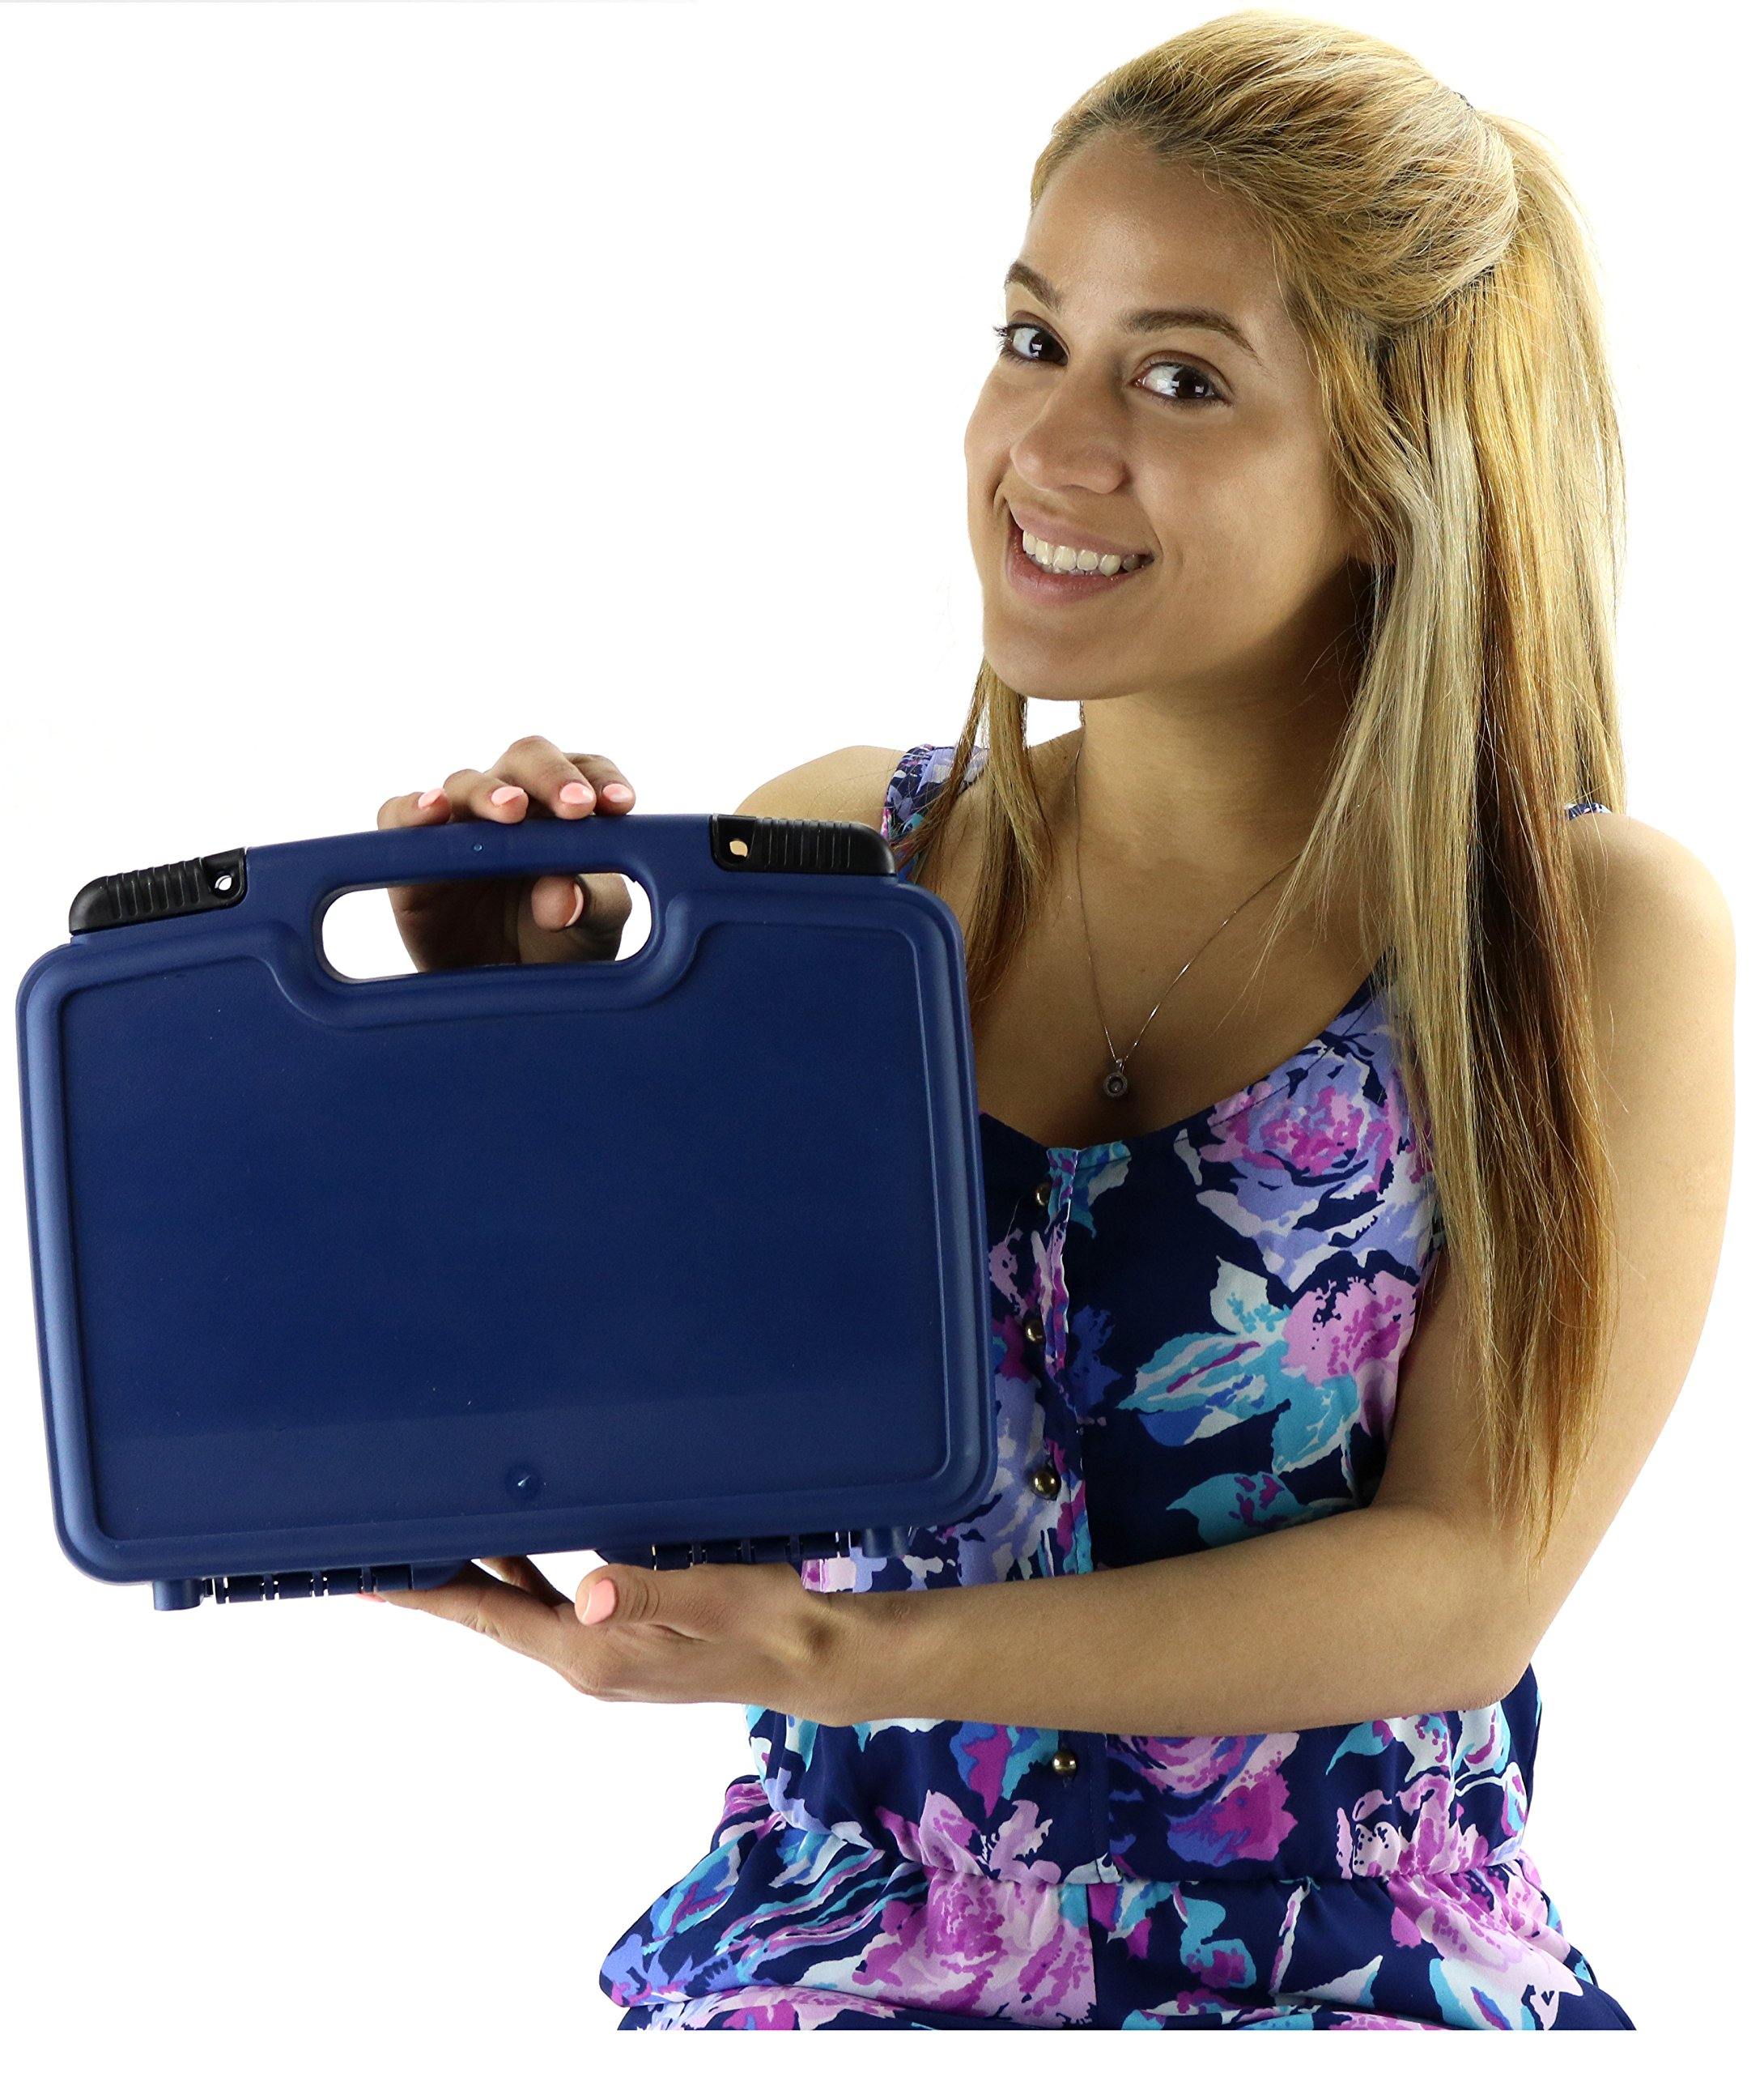 Life Made Better Storage Organizer - Compatible with Sphero 2.0 The App-Controlled Robot Ball and Accessories- Durable Carrying Case - Blue by Life Made Better (Image #7)